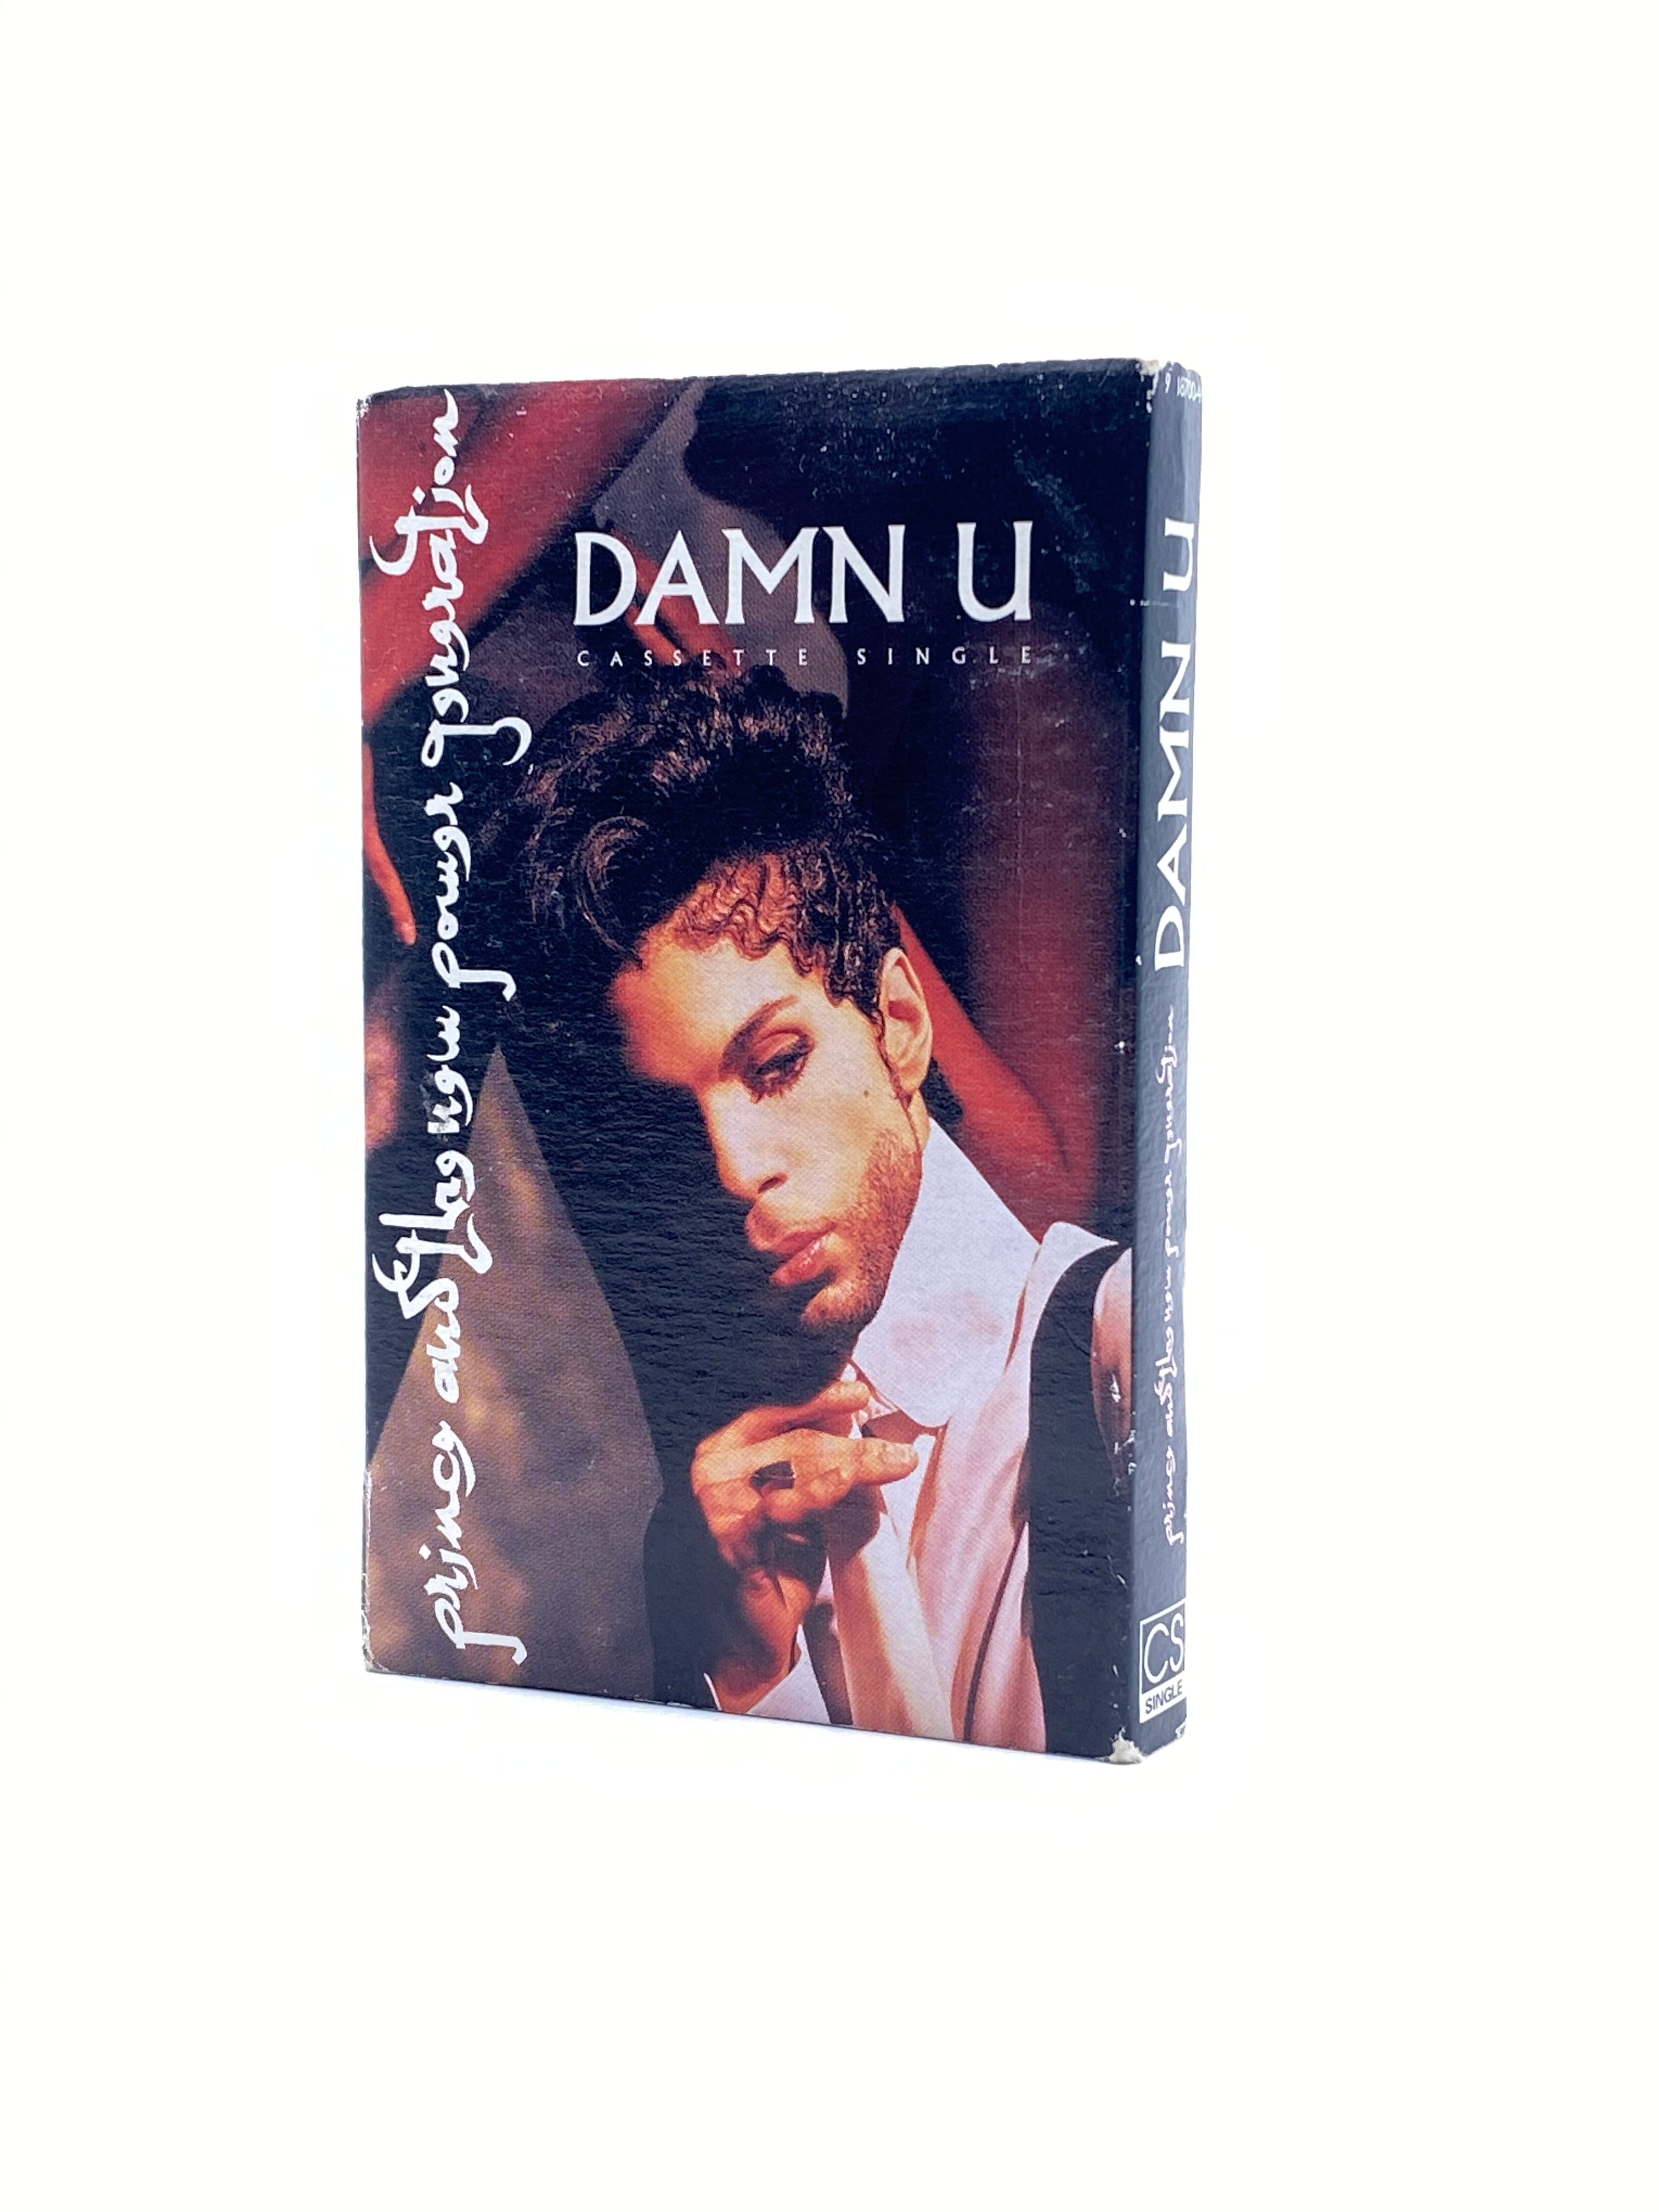 Prince And The NPG DAMN U 2 Whom It May Concern Original Cassette Single Tape USA IB